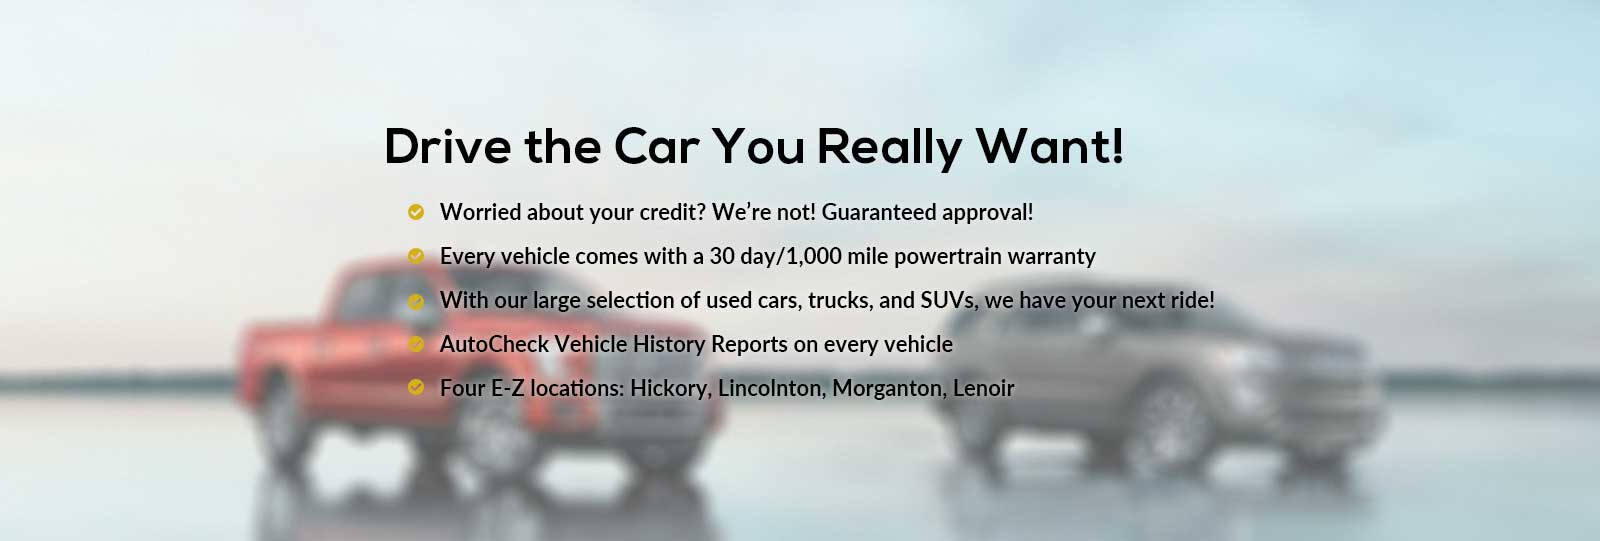 Used car dealer in concord nc serving charlotte gastonia html autos - Learn More About E Z Way Auto